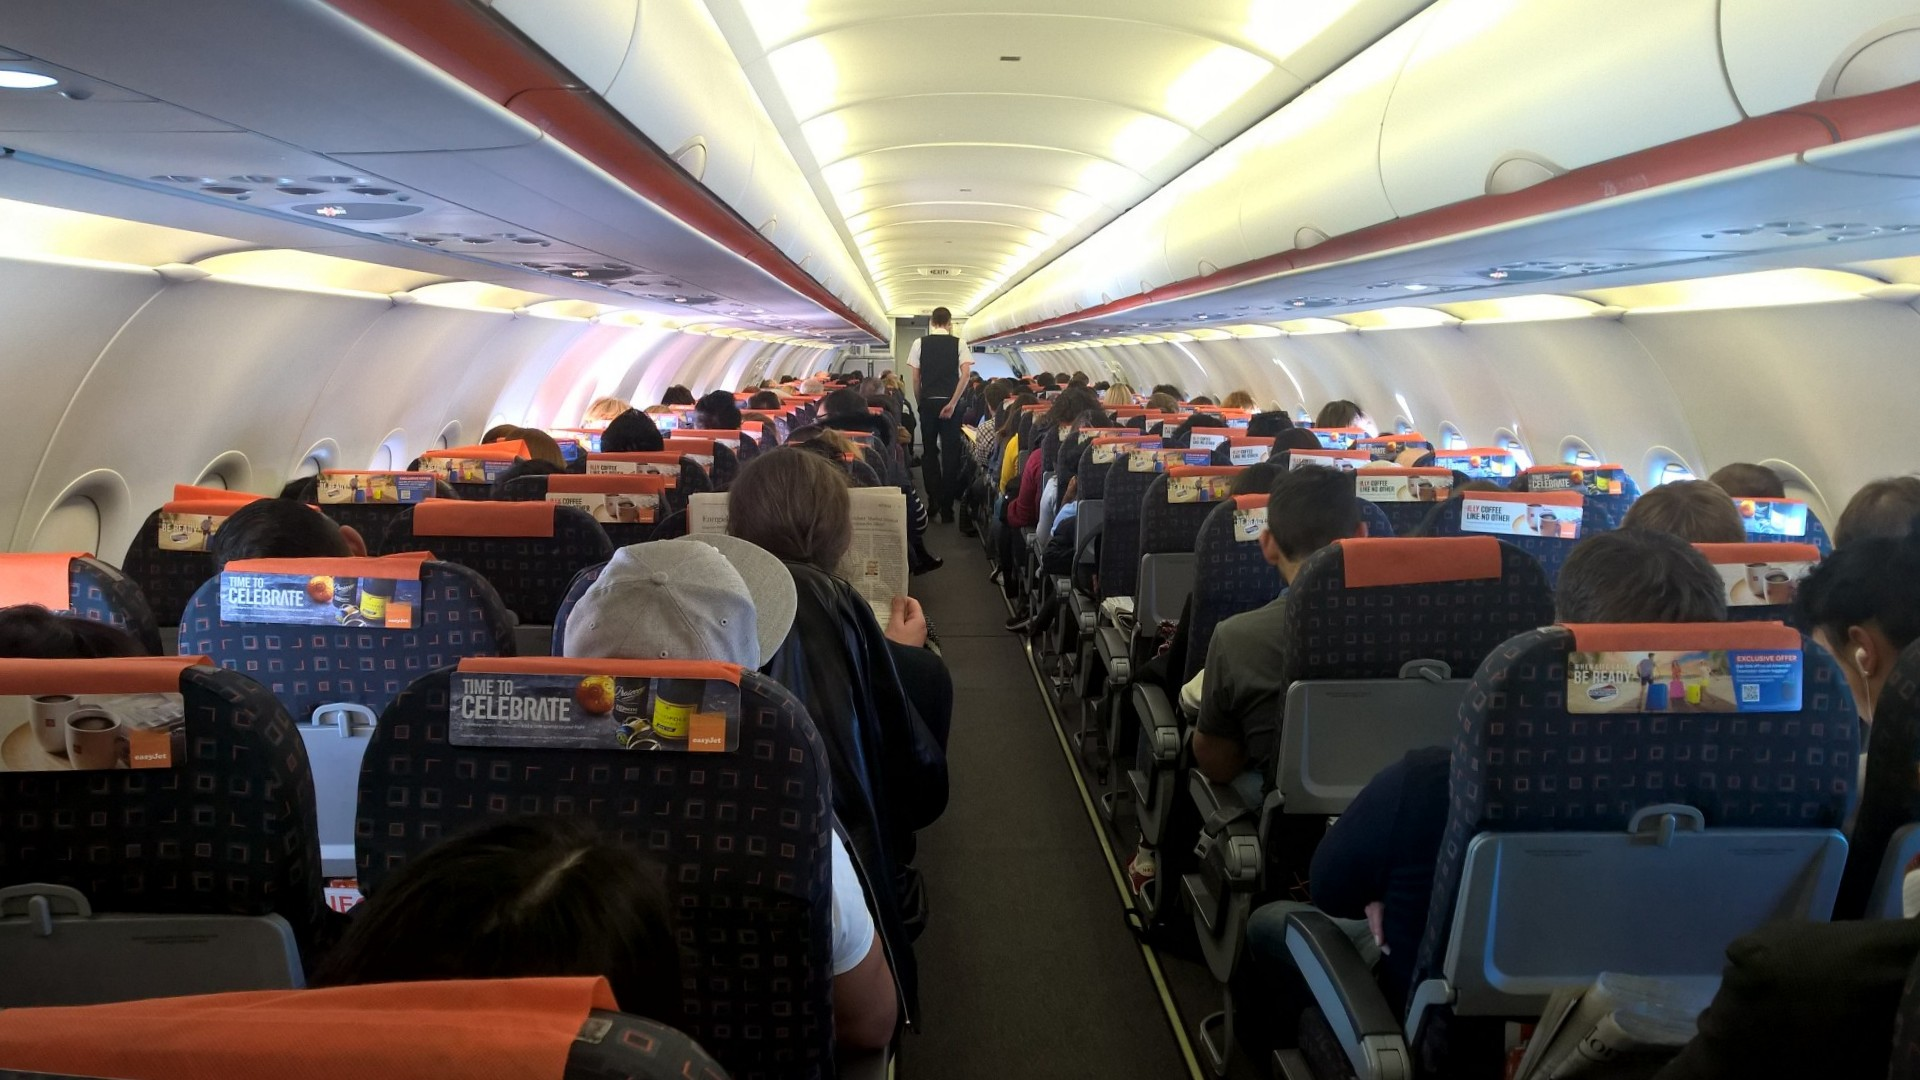 EasyJet Seating